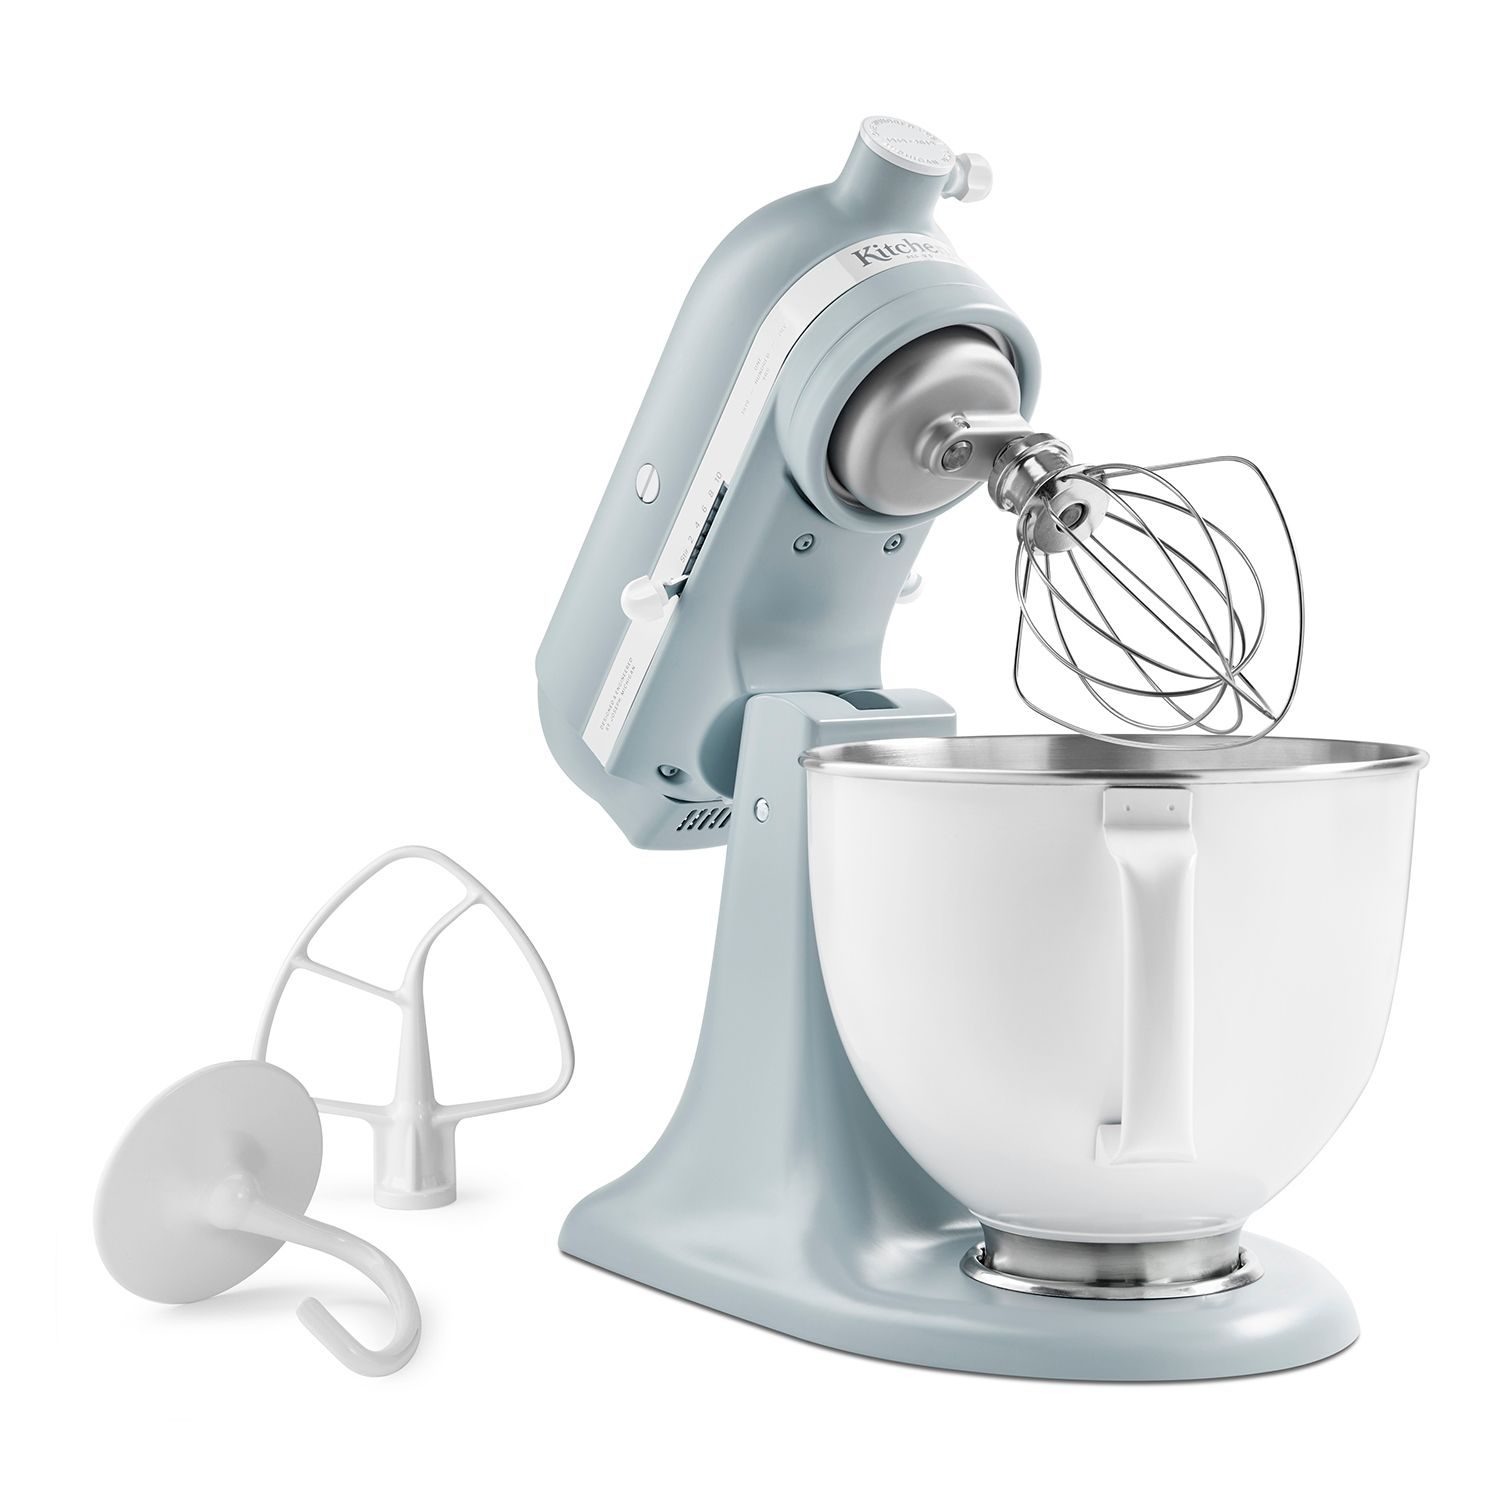 KitchenAid KSM180RPMB Limited Edition Heritage Artisan Series 5 Quart  Tilt Head Stand Mixer